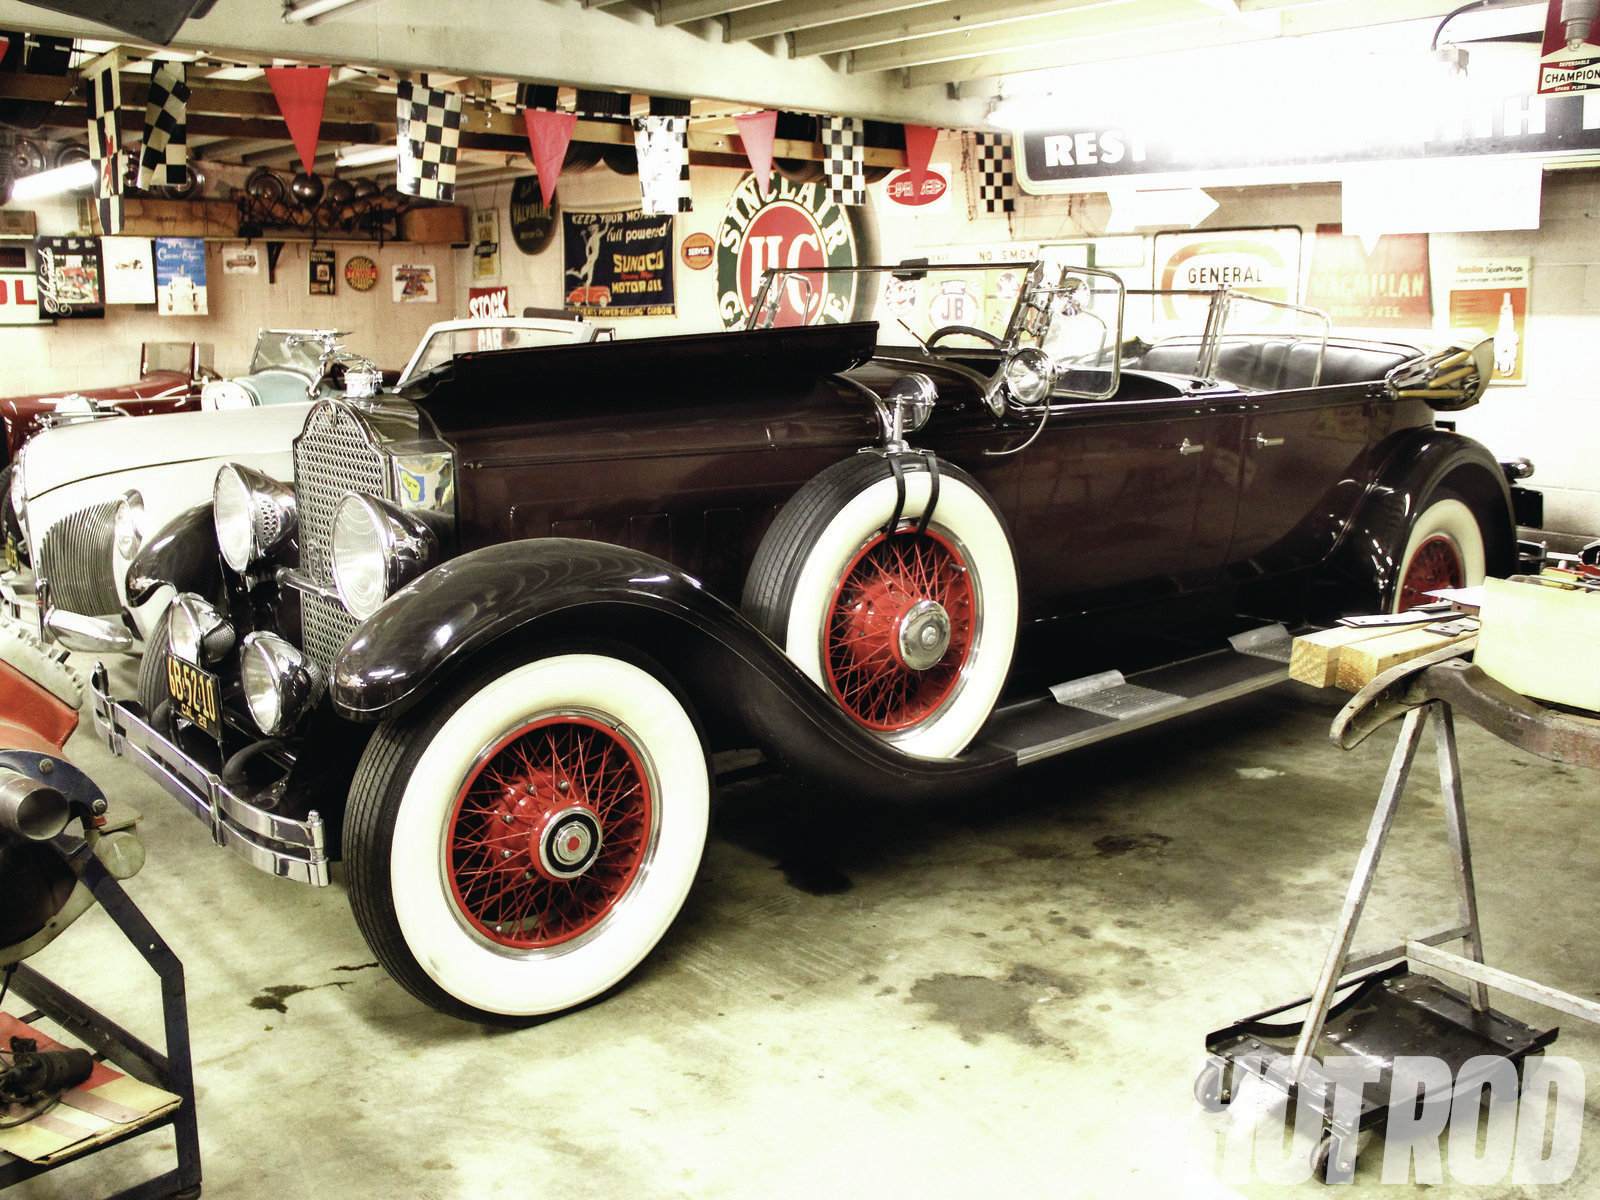 Though Sparks was an avid Packard restorer, having won many First Place showings at the Pebble Beach Concours, this '29 Packard dual-cowl phaeton he purchased in the early '60s was left as he bought it, in fairly decent restored condition.